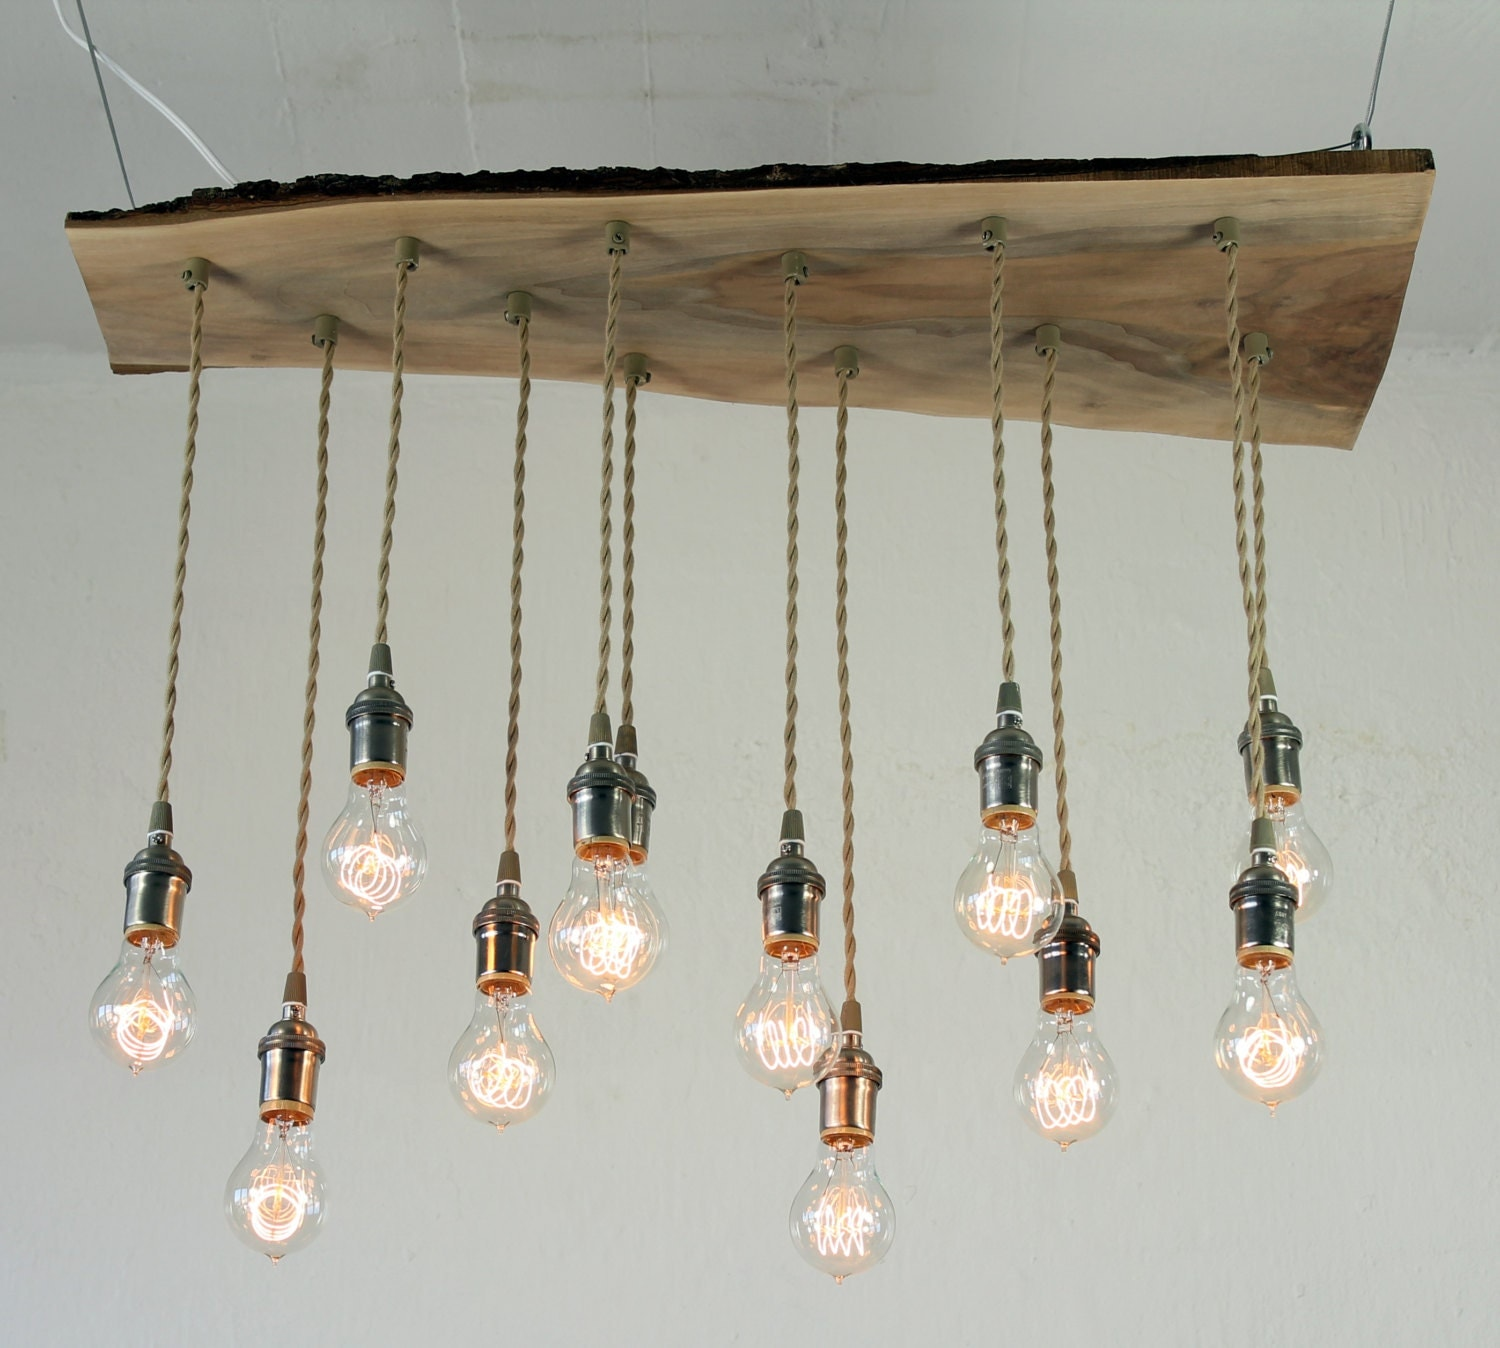 Just Reduced Rustic Handmade 3 Bulb Hanging Light Fixture Or: Salvaged Live Edge Wood Chandelier With Victorian Edison Bulbs